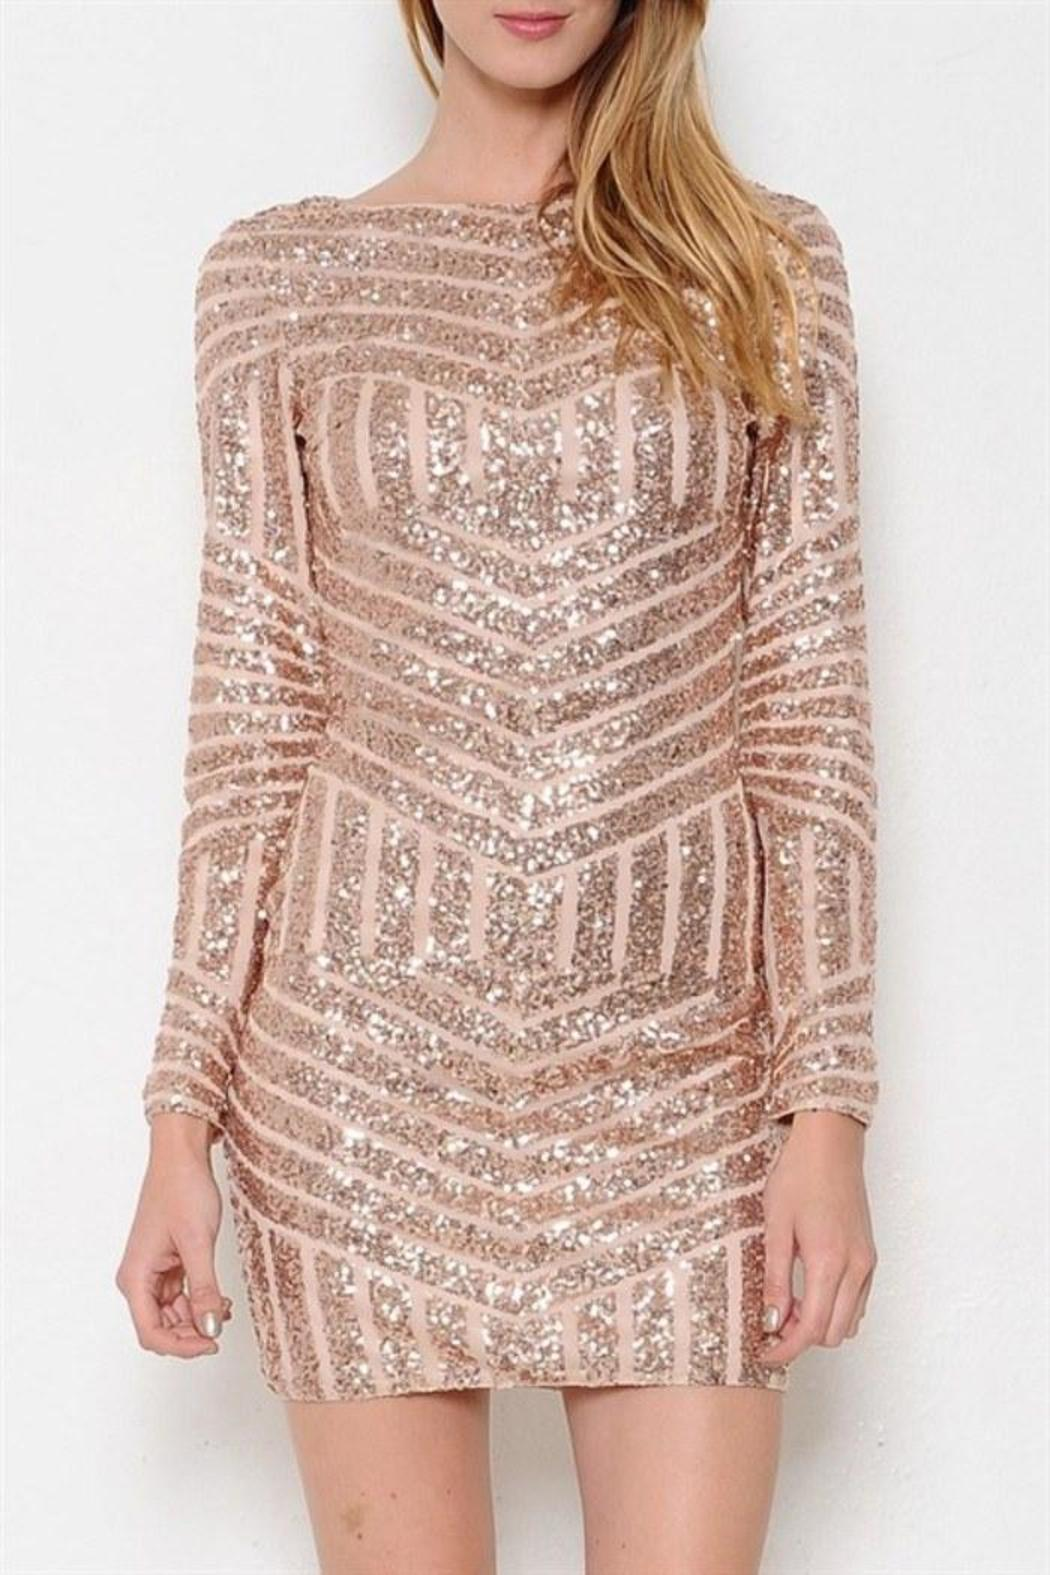 rose gold sequin dress from laredo by dollz boutique. Black Bedroom Furniture Sets. Home Design Ideas